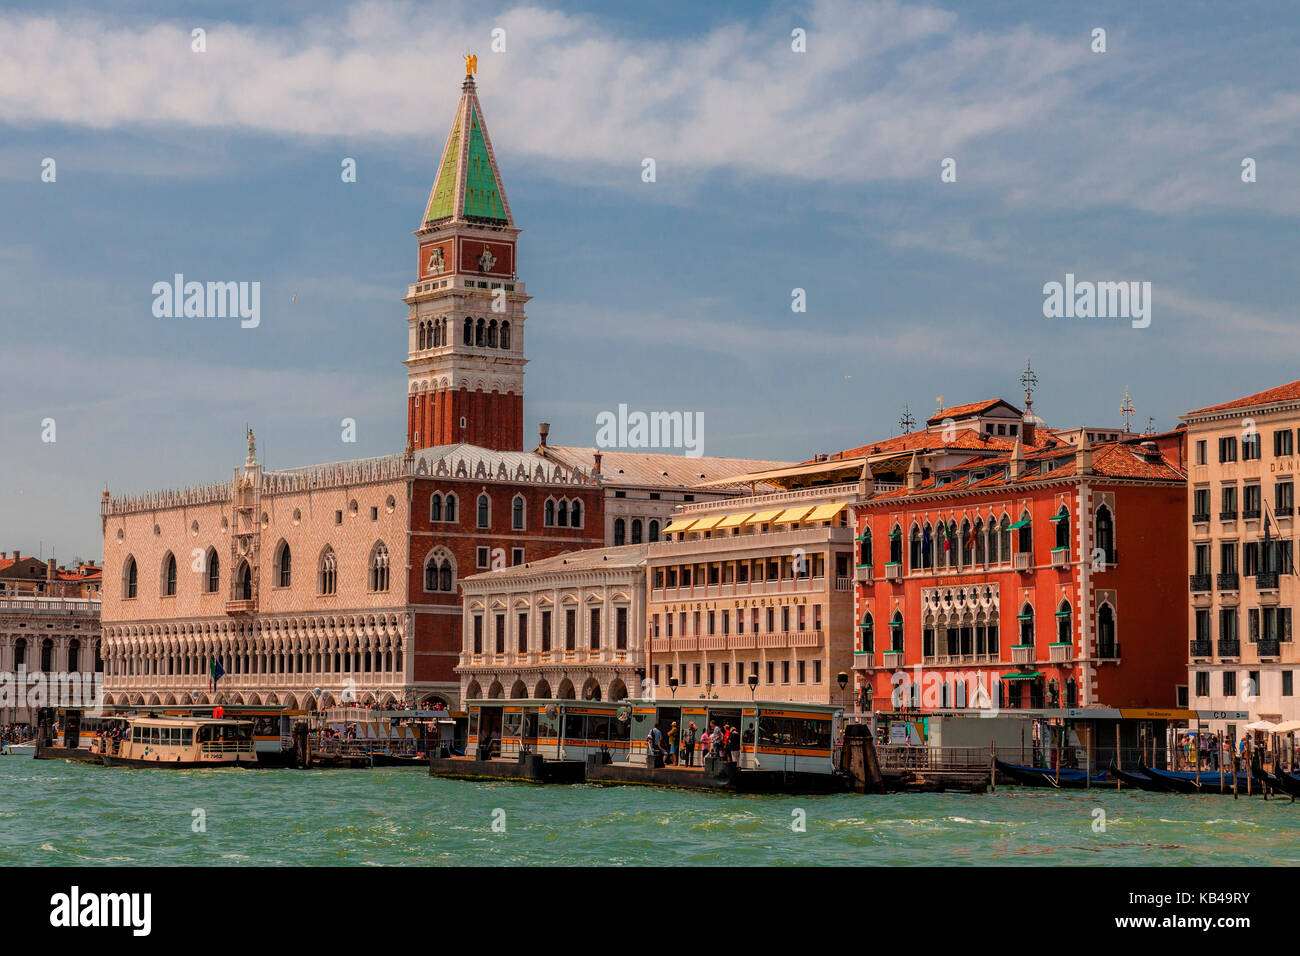 Venice, Italy's Doges Palace and the Campanile - Stock Image